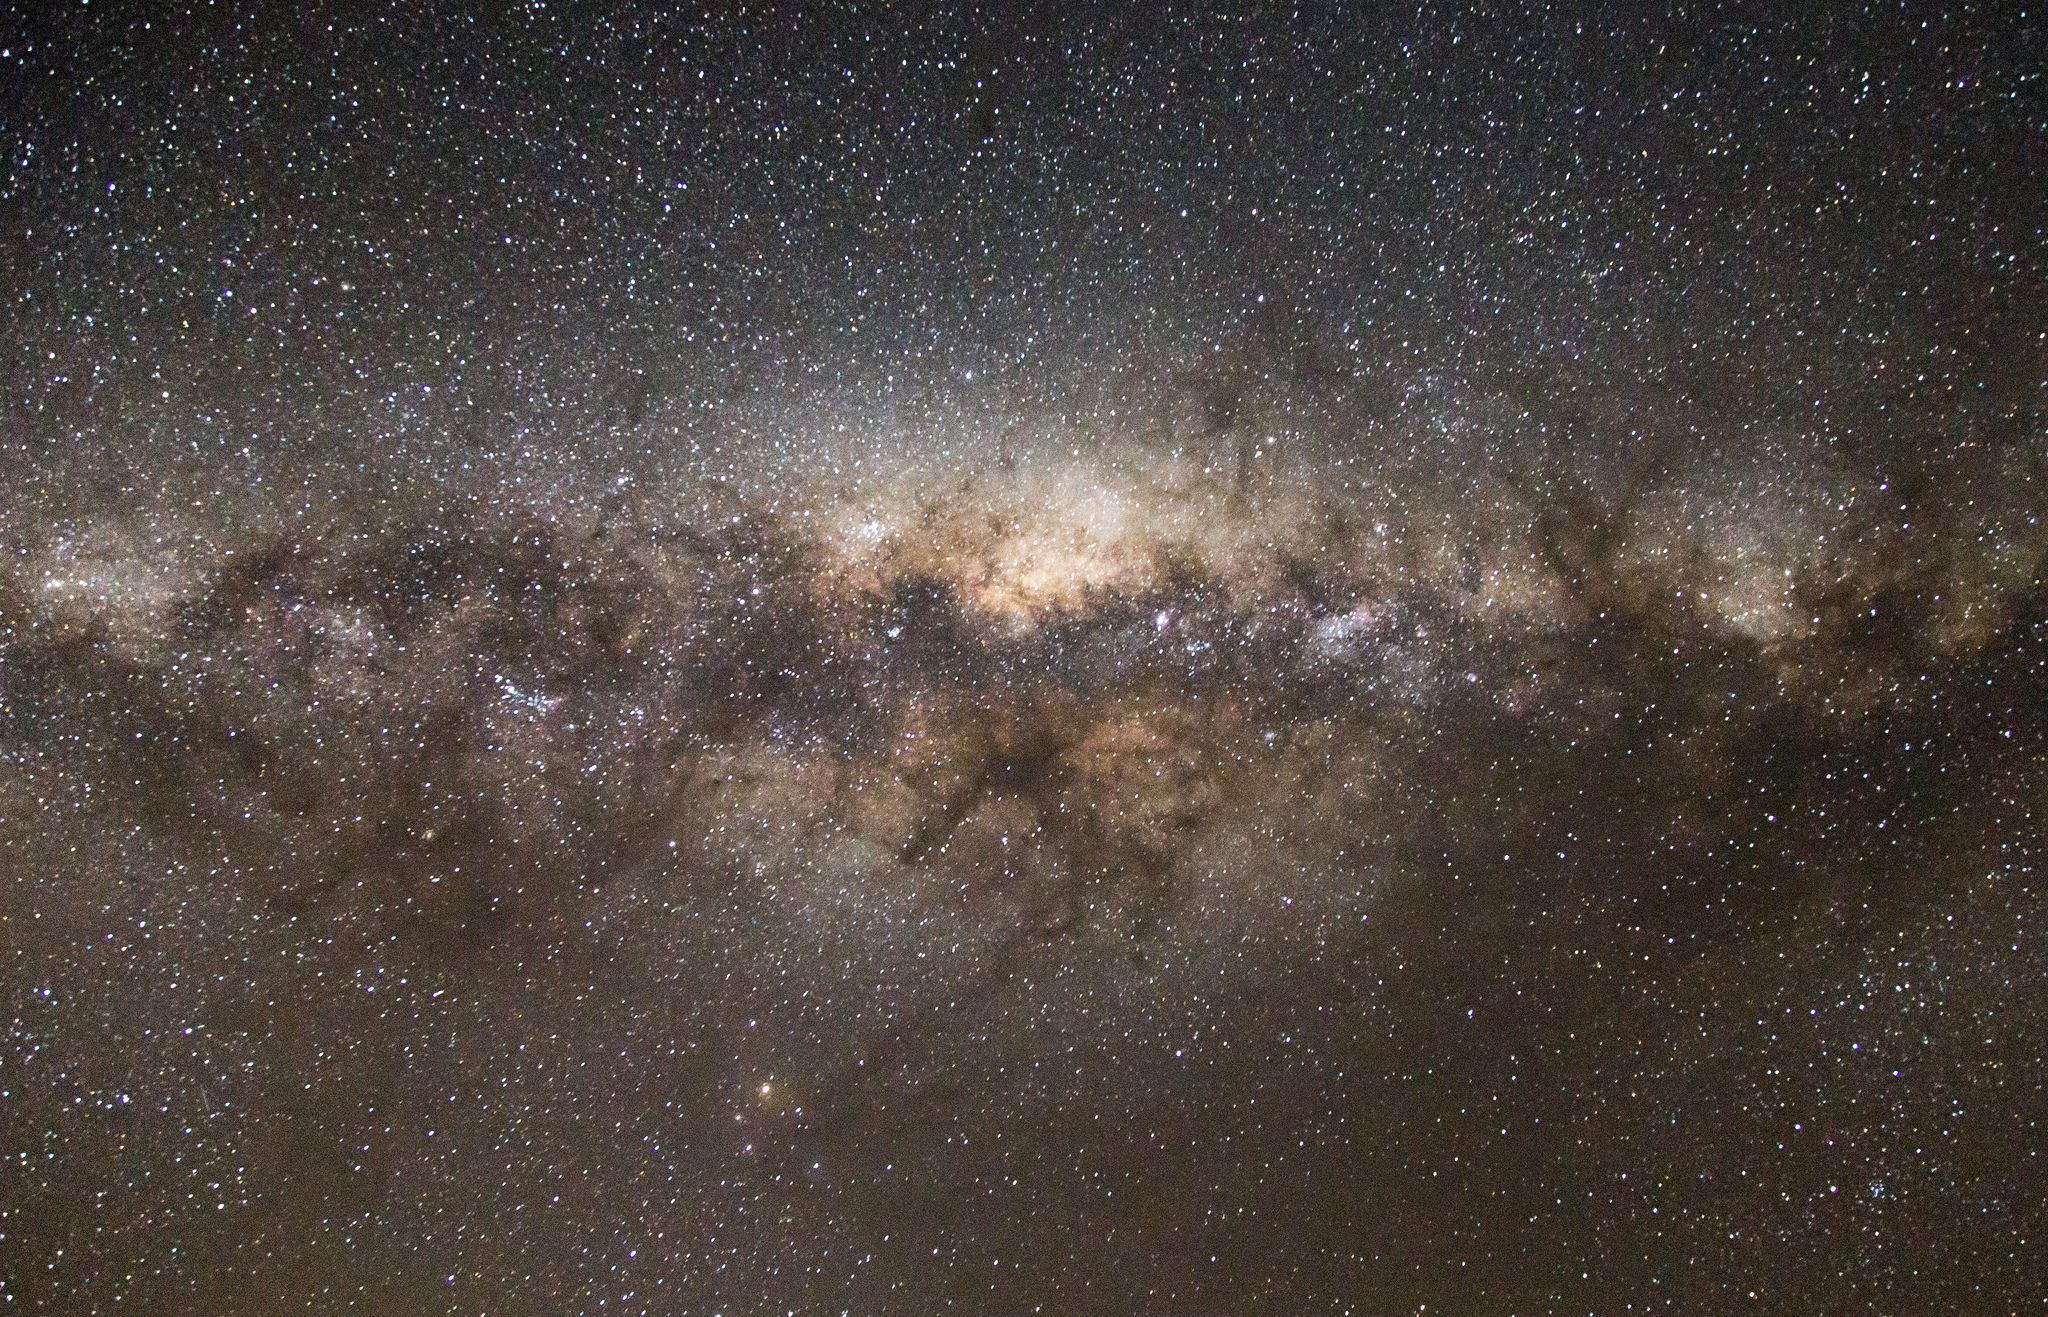 Great images of our galaxy